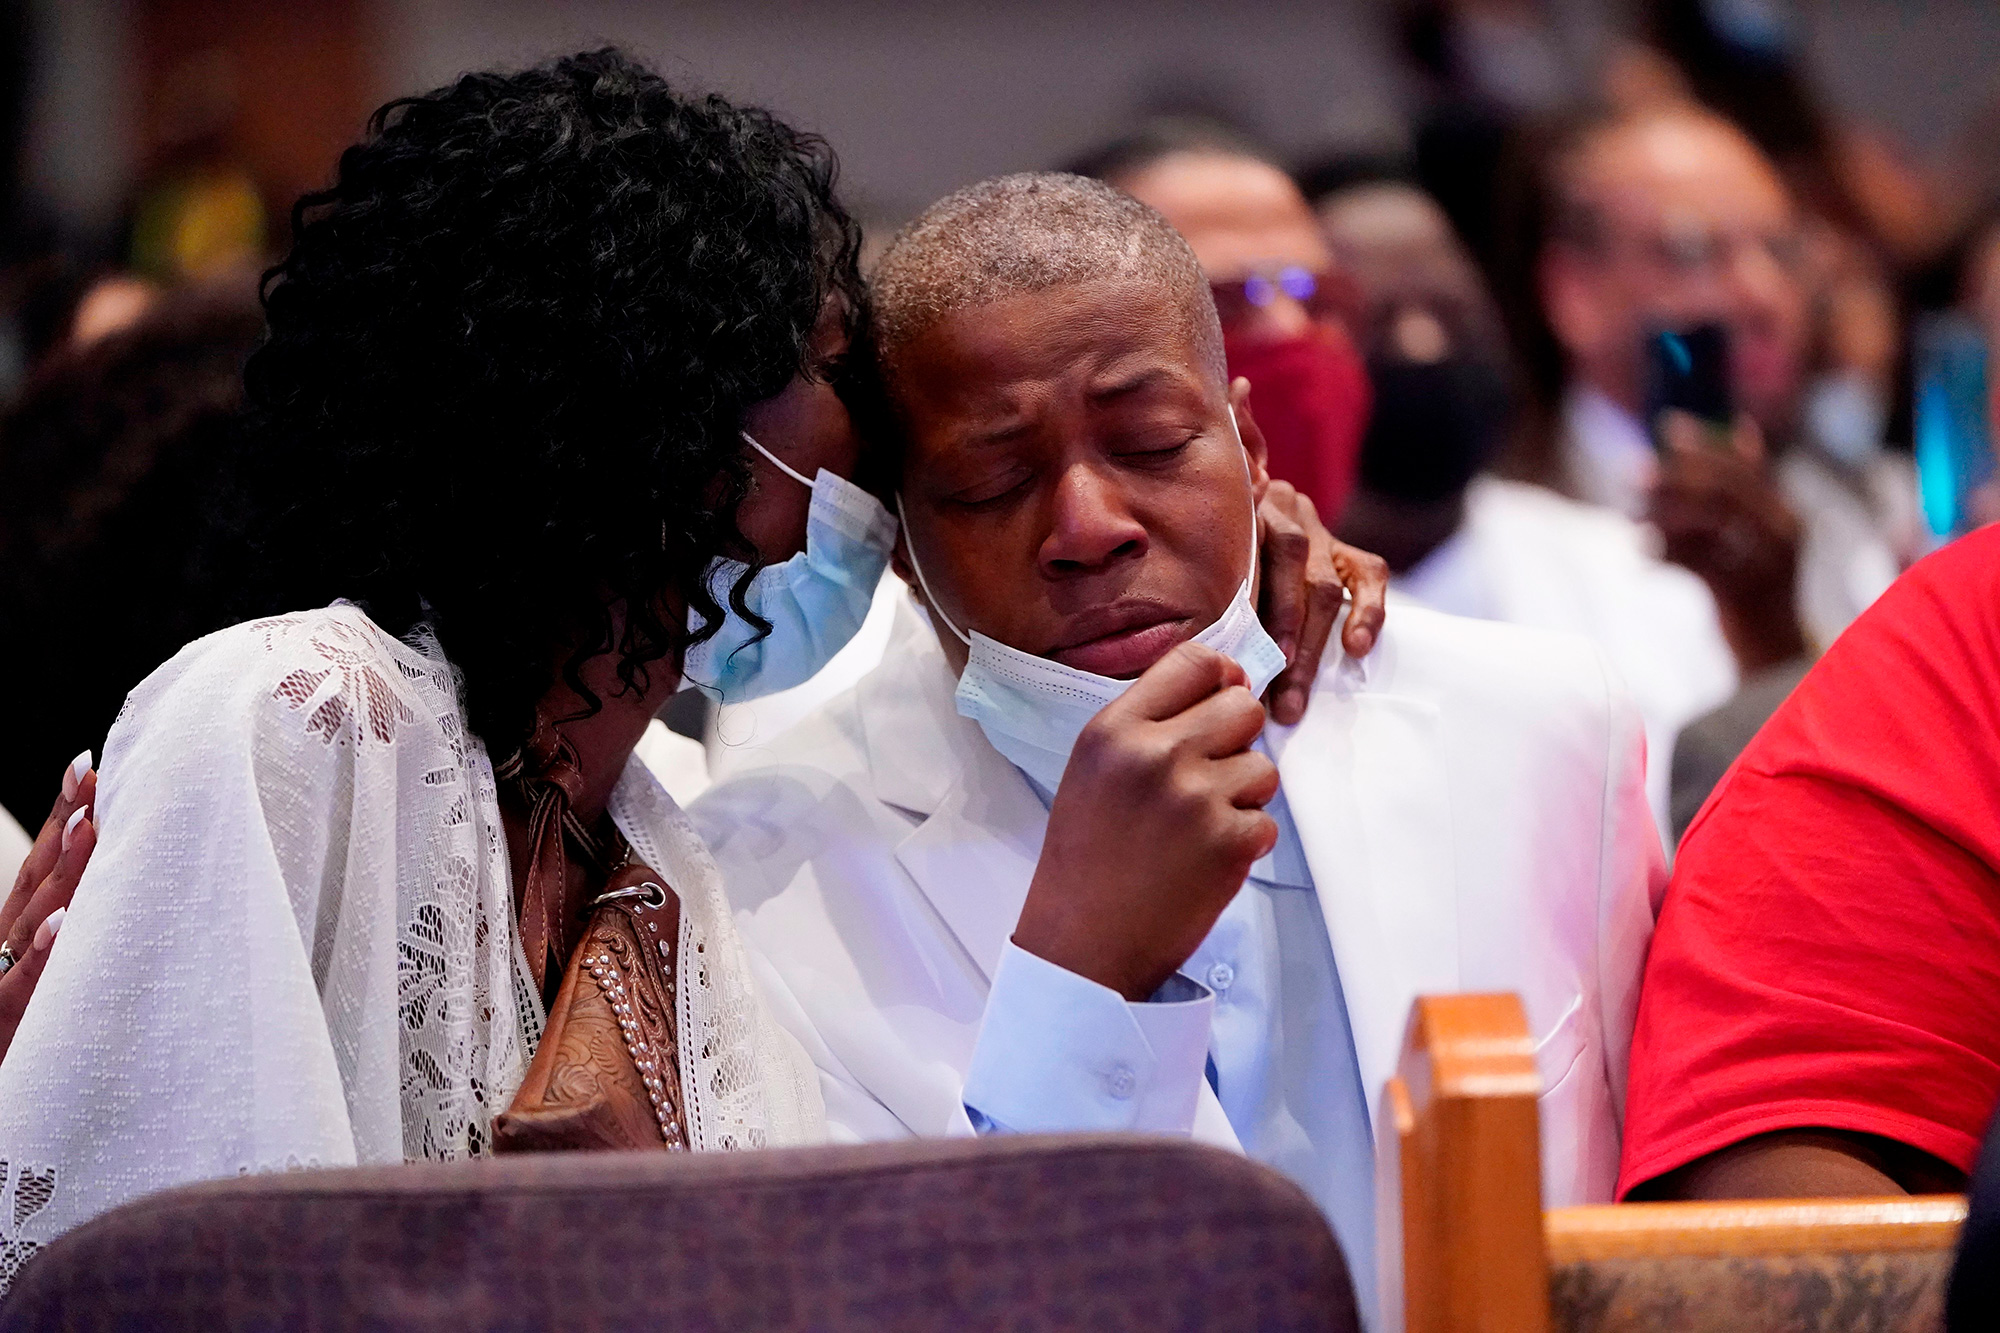 Sisters of George Floyd Zsa Zsa Floyd, embraces her sister LaTonya Floyd during a funeral service for George Floyd at The Fountain of Praise church Tuesday, June 9, 2020, in Houston